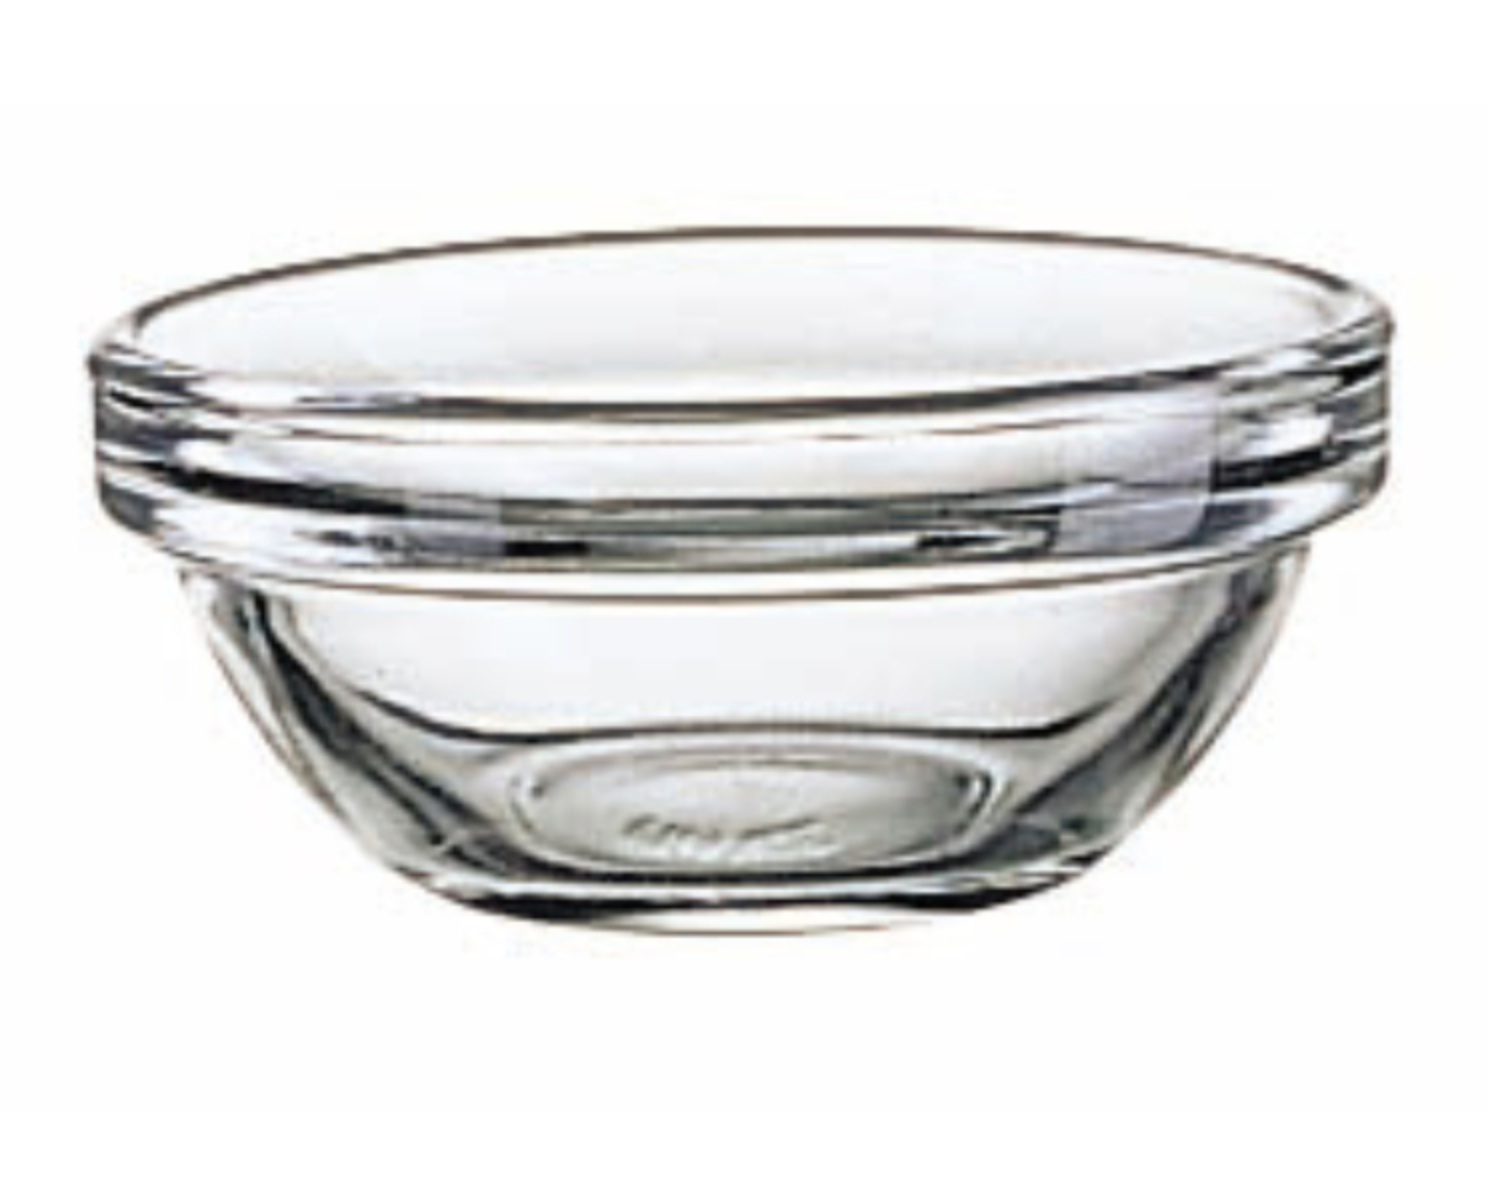 Stackable Glass Bowls 4 Inch Diameter, Set of 6